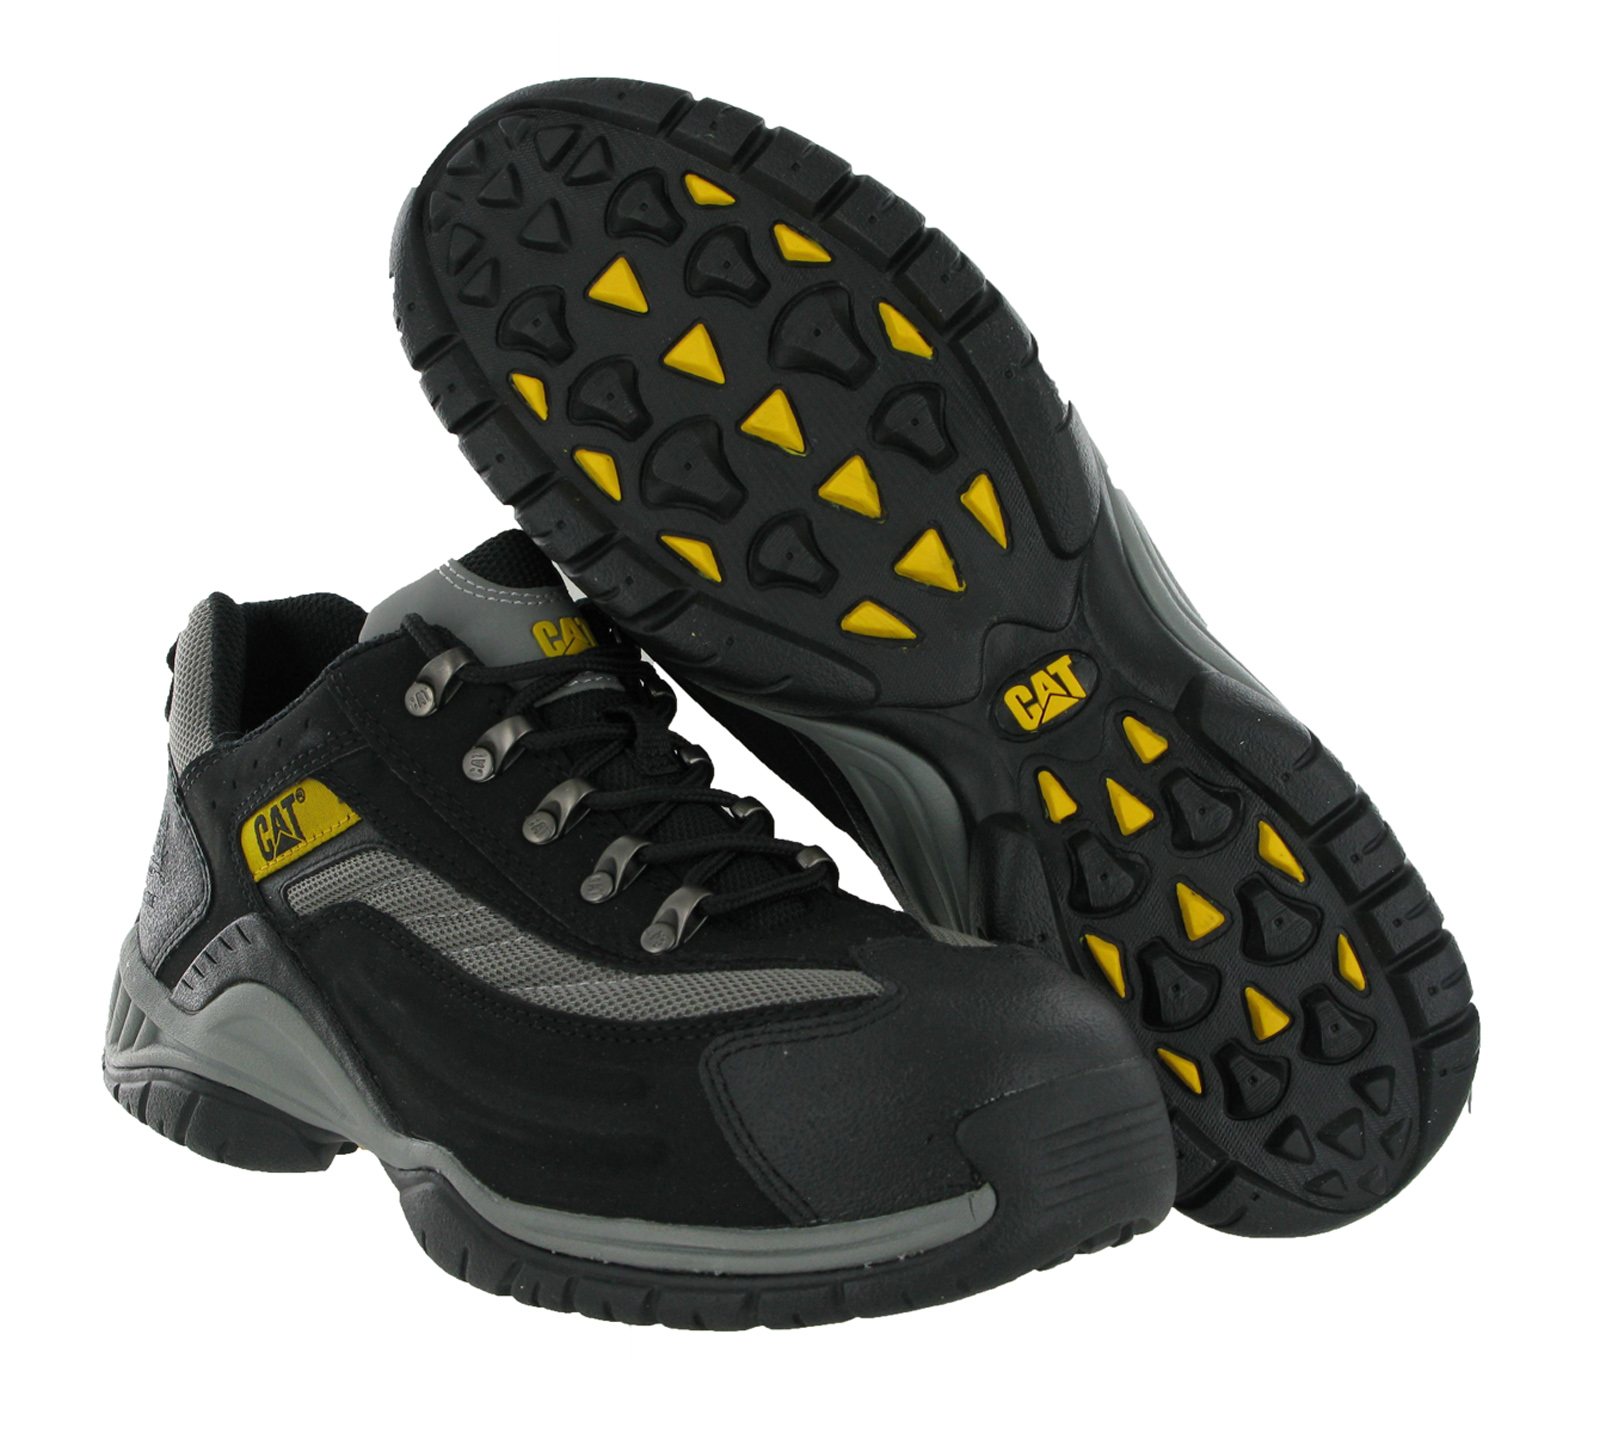 Mens Steel Toe Cap Boots Safety Work Shoes Size 6.5/40 on PopScreen